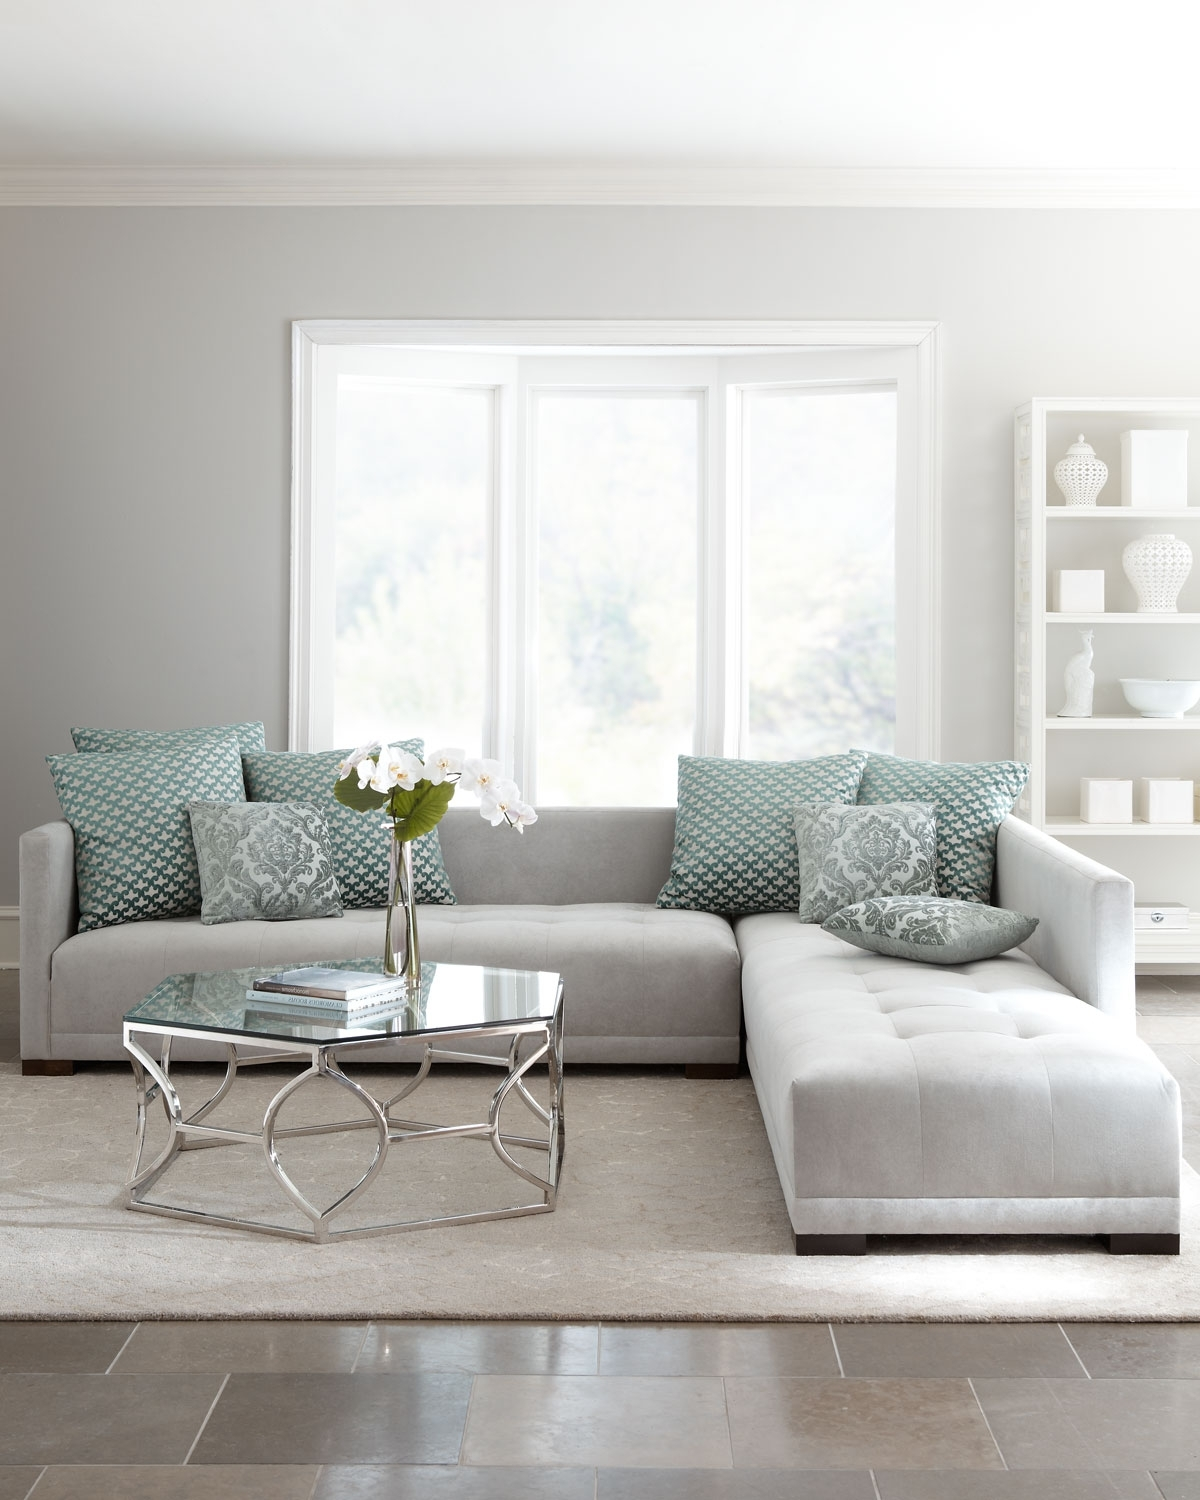 7 Ways To Use Duck Egg Blue To Spruce Up Your Living Room Decor Living Room With Duck Egg Blue